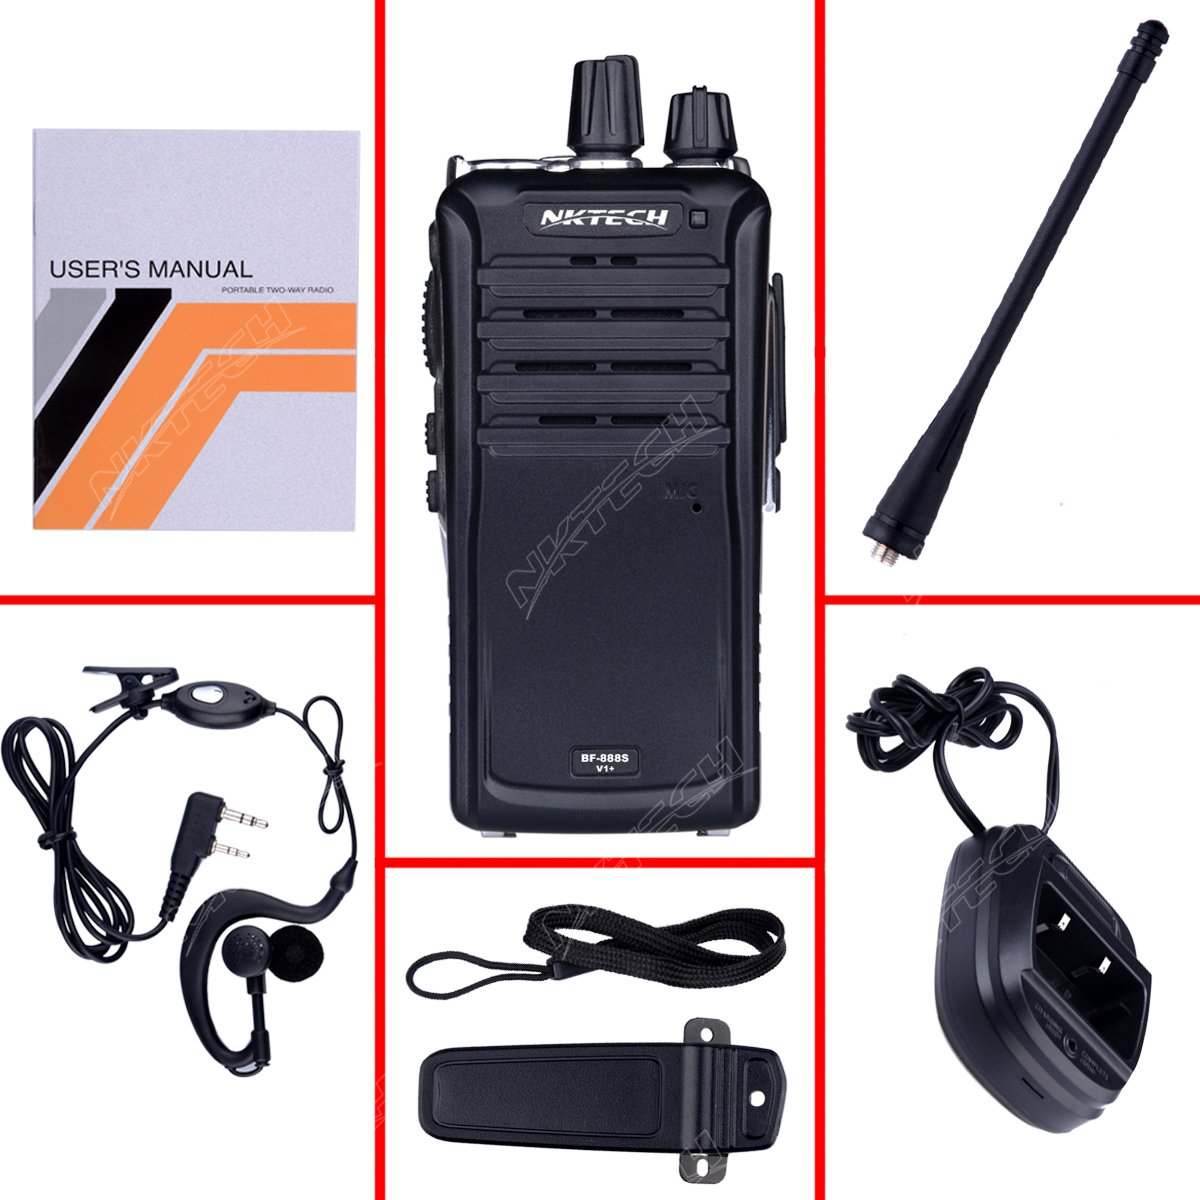 NKTECH BF-888S V1 UHF 400-470MHz 5W 16 Channels Ham Transceiver Two Way a Radio Walkie Talkie with 1800mAh 3.7V Li-ion Batteries Accessories Warranty Pack of 2 BF-888S-V1+